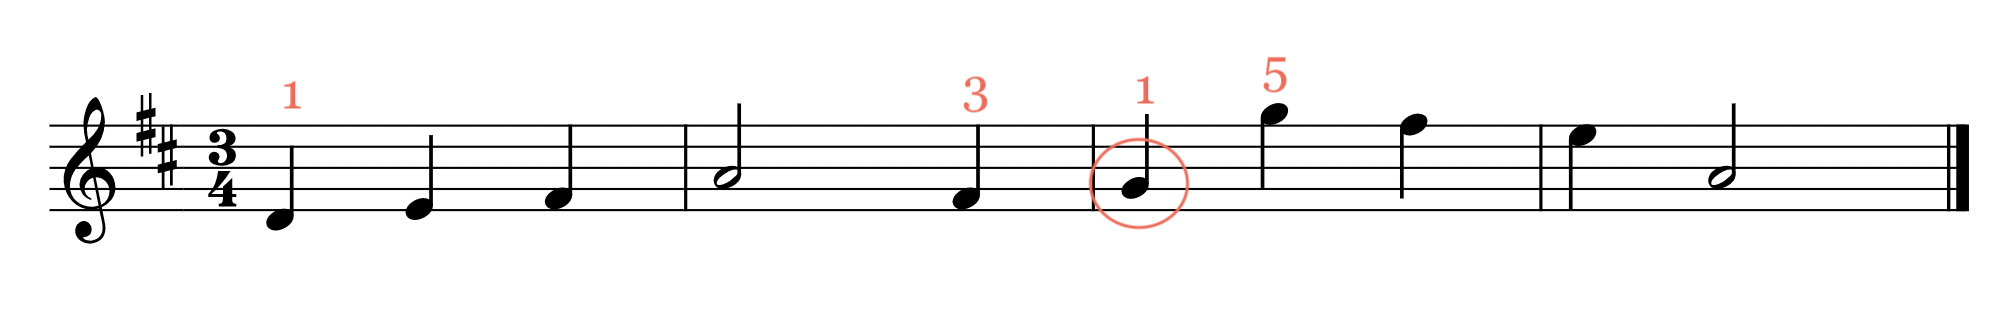 fingering for large intervals